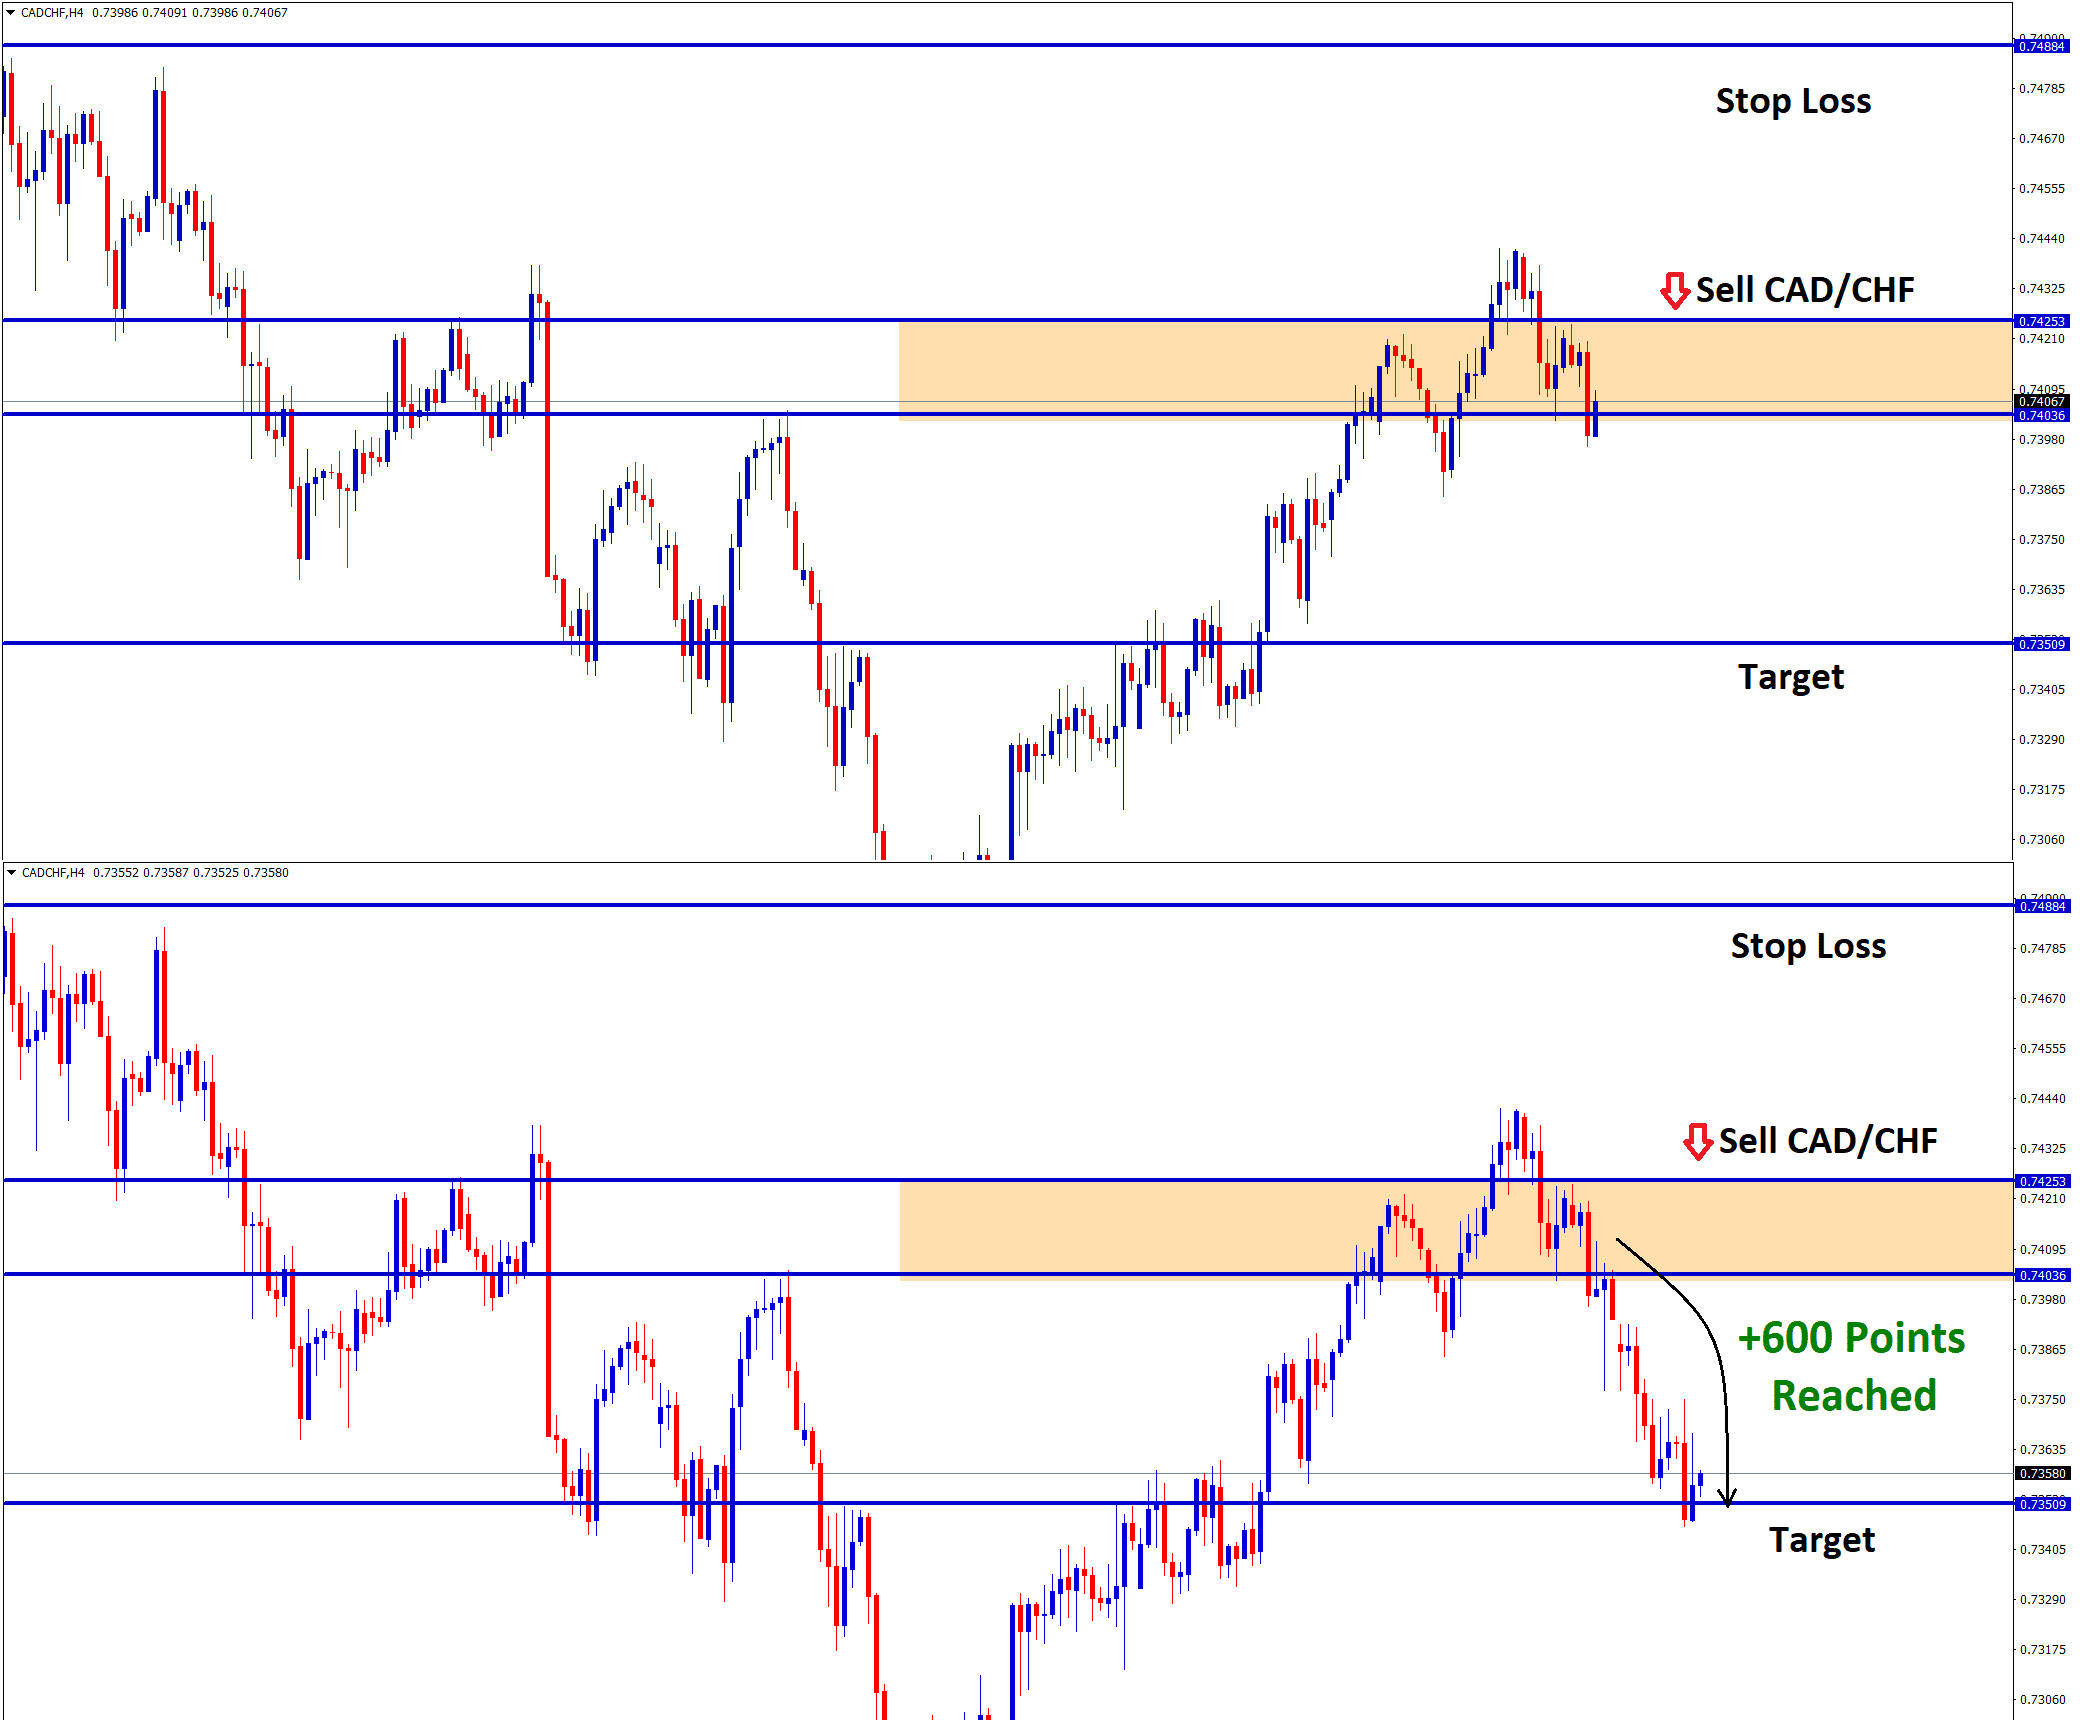 cad chf forex sell signal reached take profit